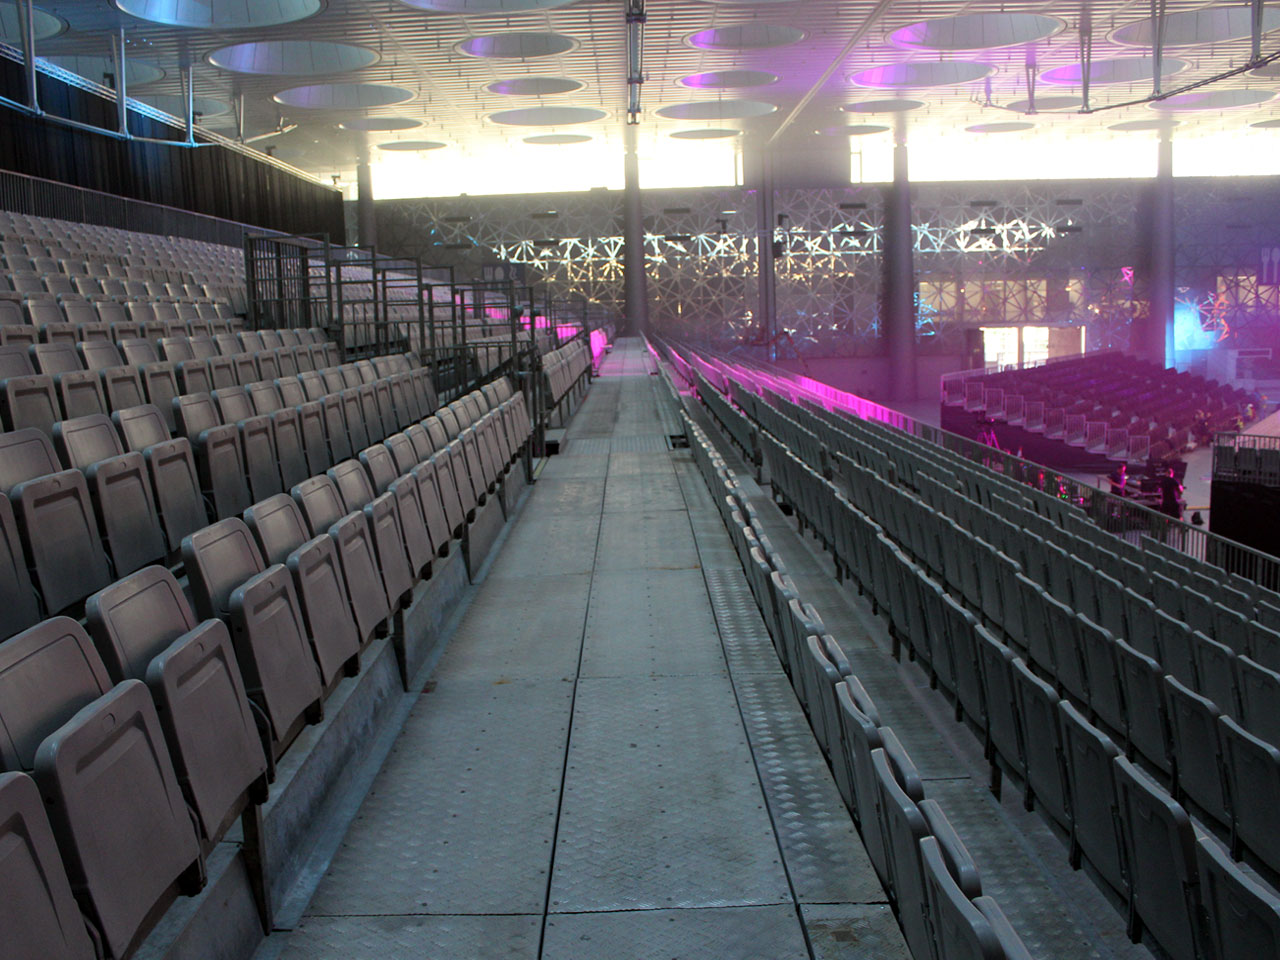 decc-project-grandstands-and-stage-2019-7